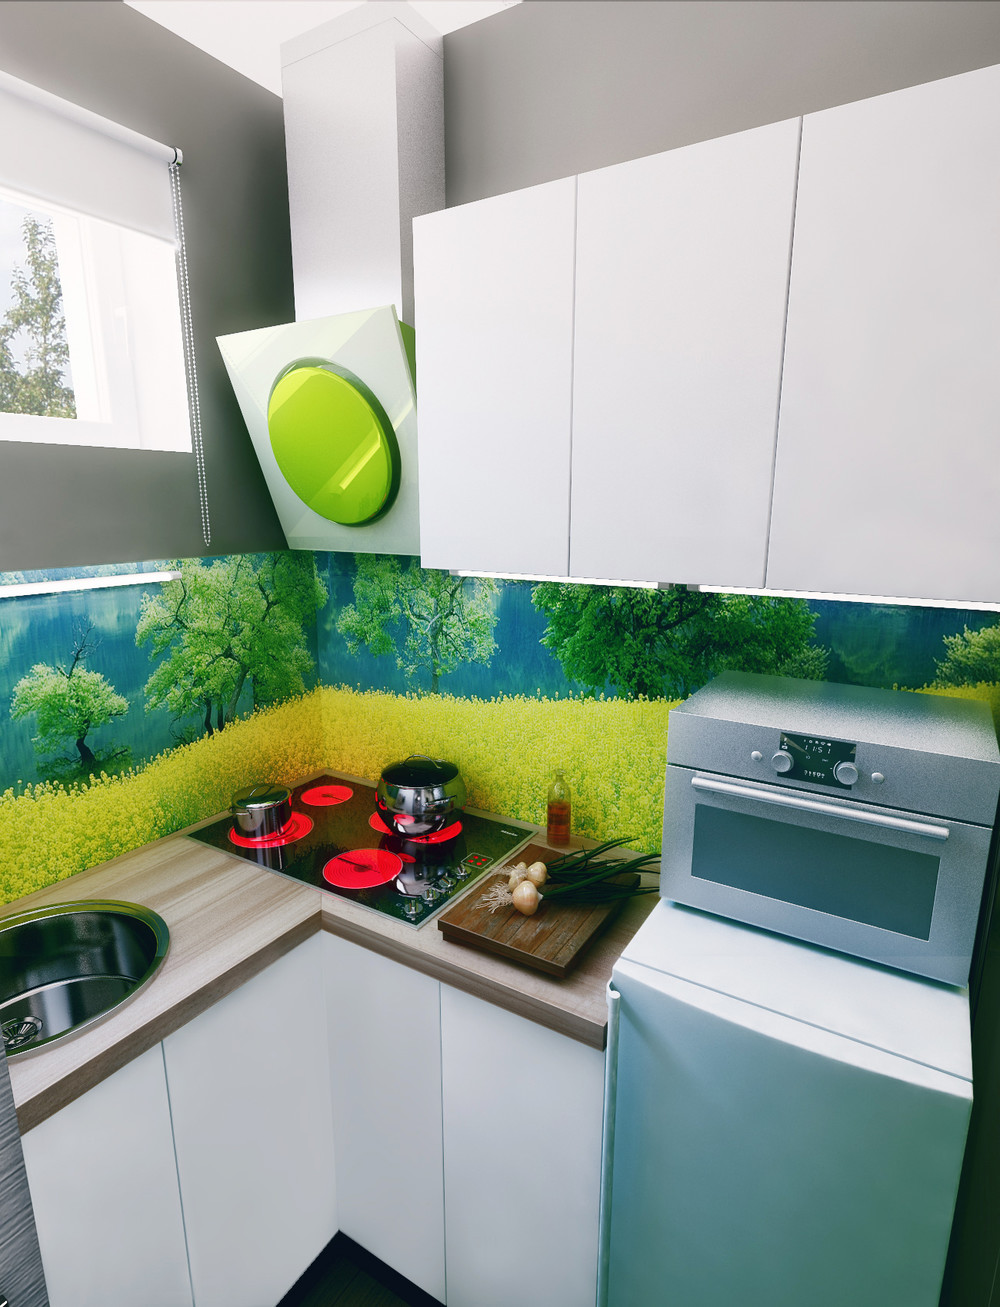 Super Compact Kitchen Ideas - 6 beautiful home designs under 30 square meters with floor plans